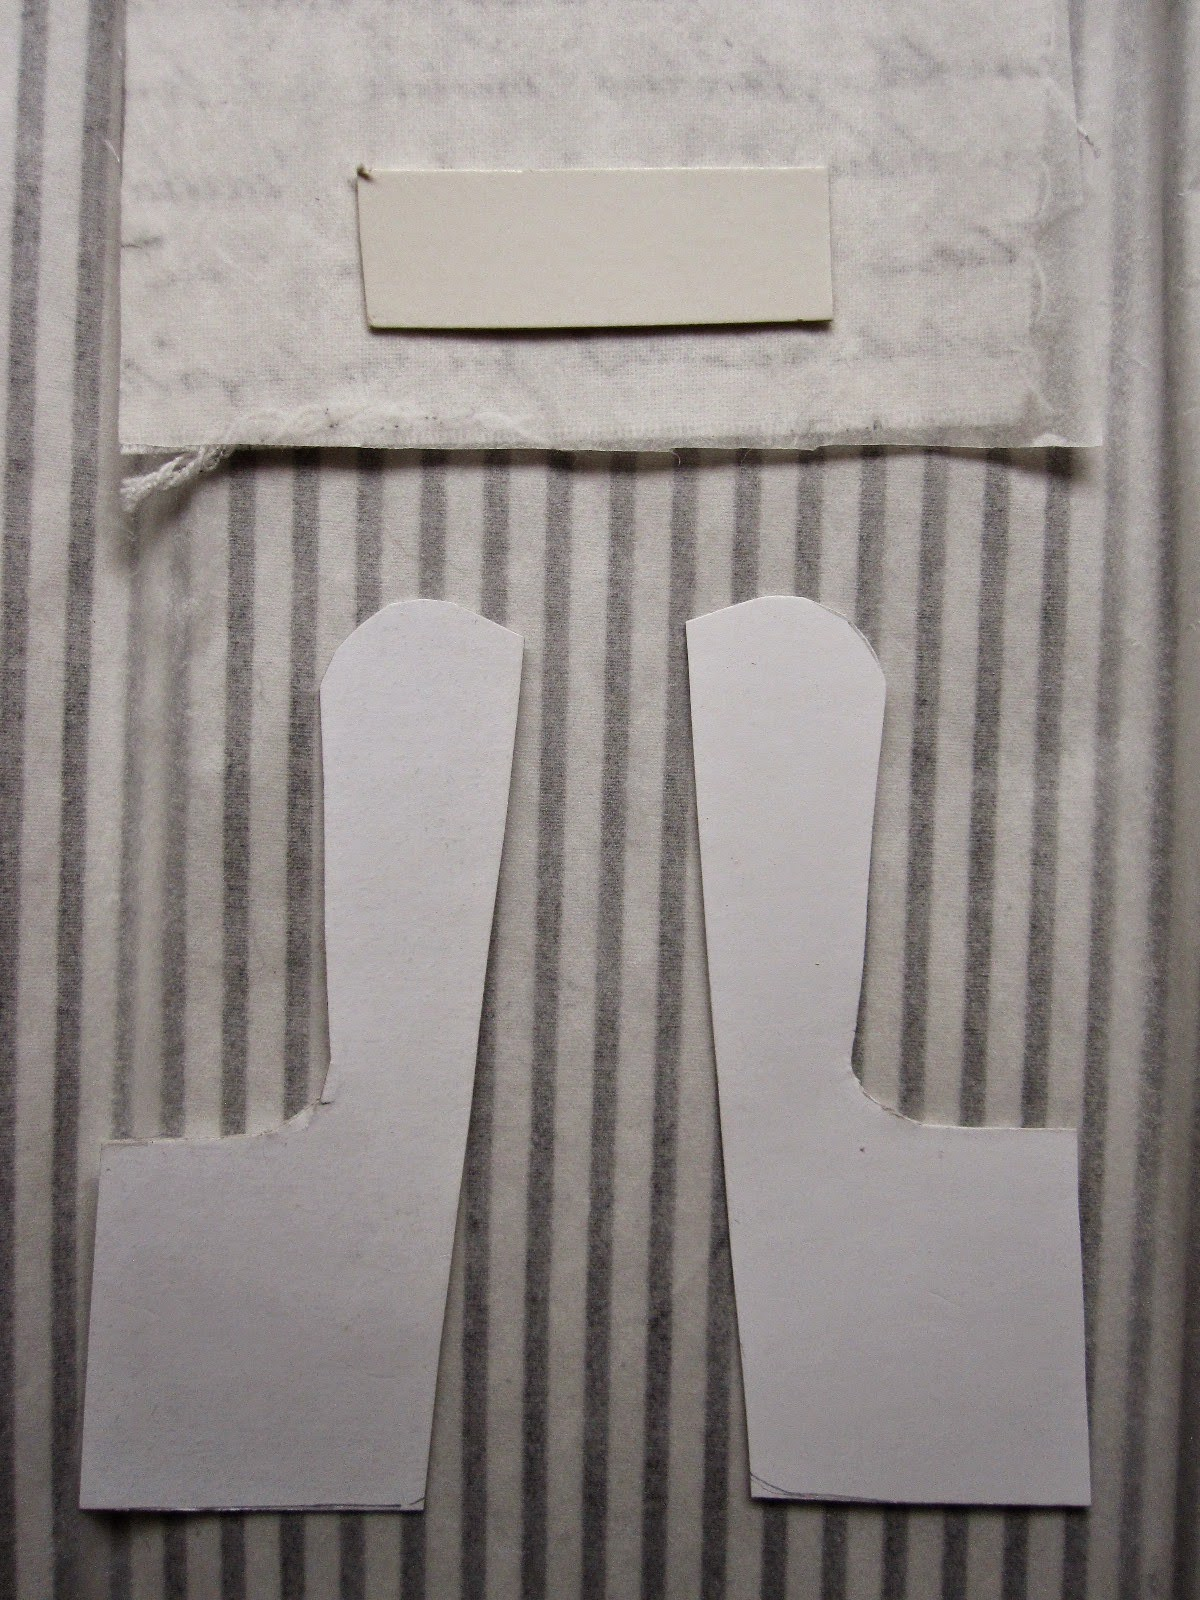 Two cardboard chair component shapes laid out on the wrong side of fabric, ready to be cut out.